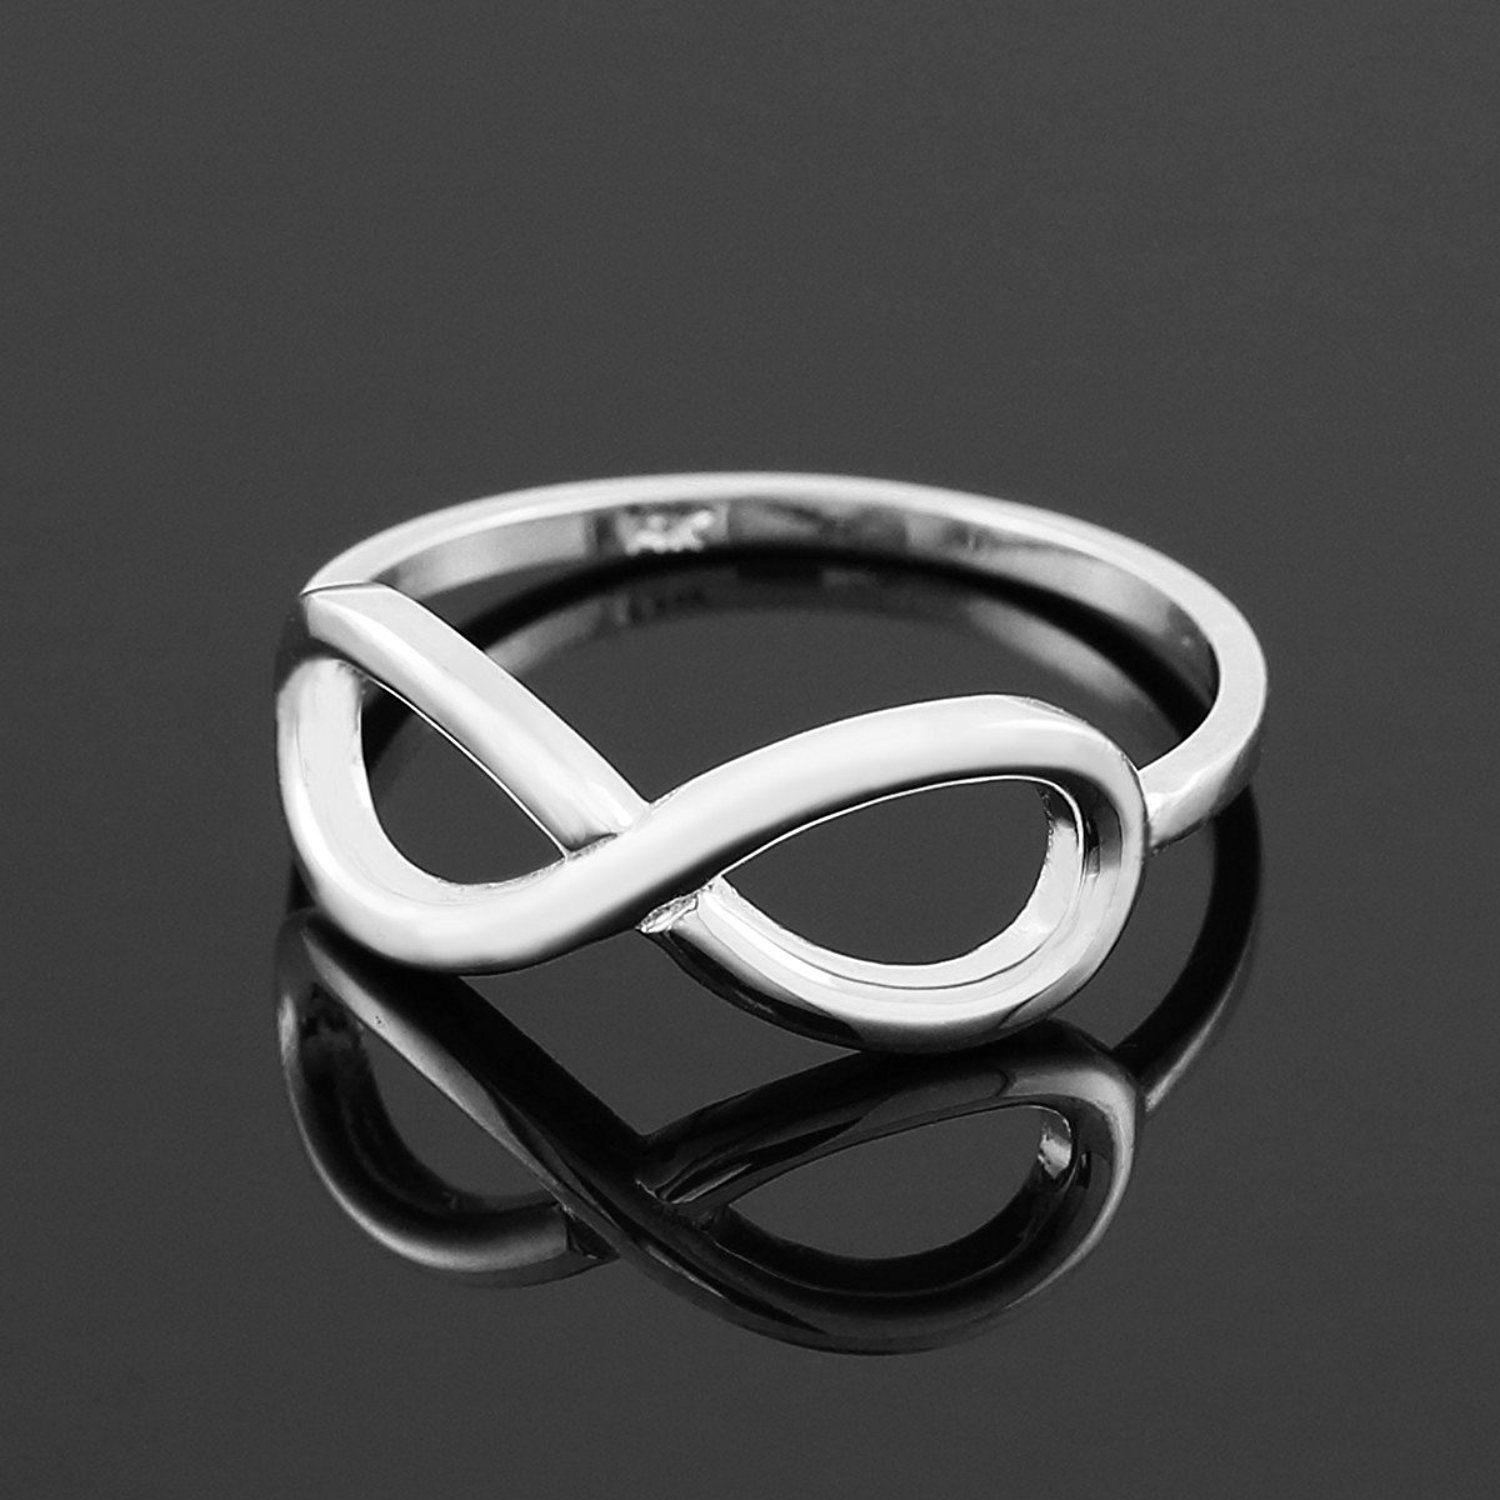 Polished 10k White Gold Infinity Ring (6.5)